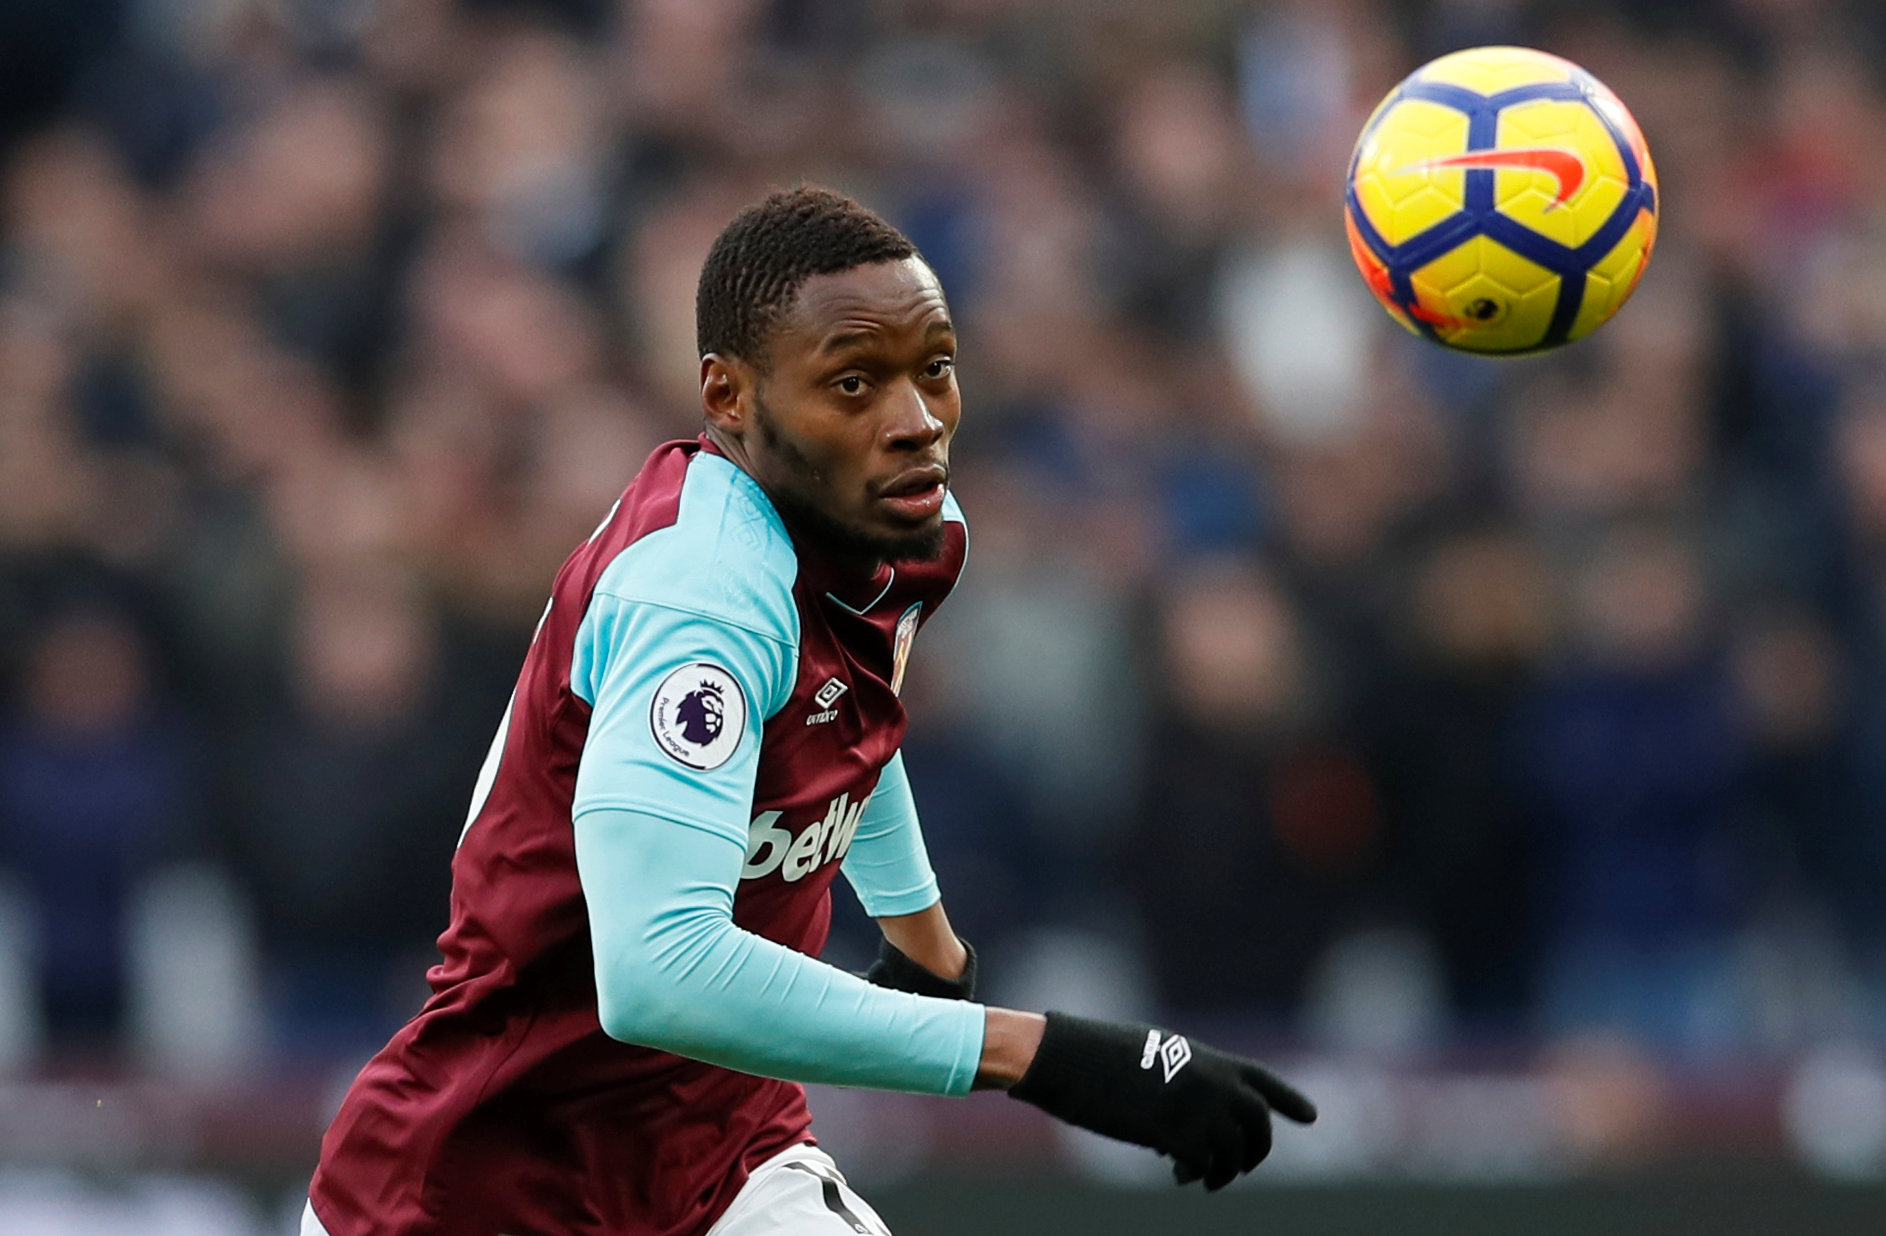 Diafra Sakho has been linked with a move to Crystal Palace. Picture: Action Images